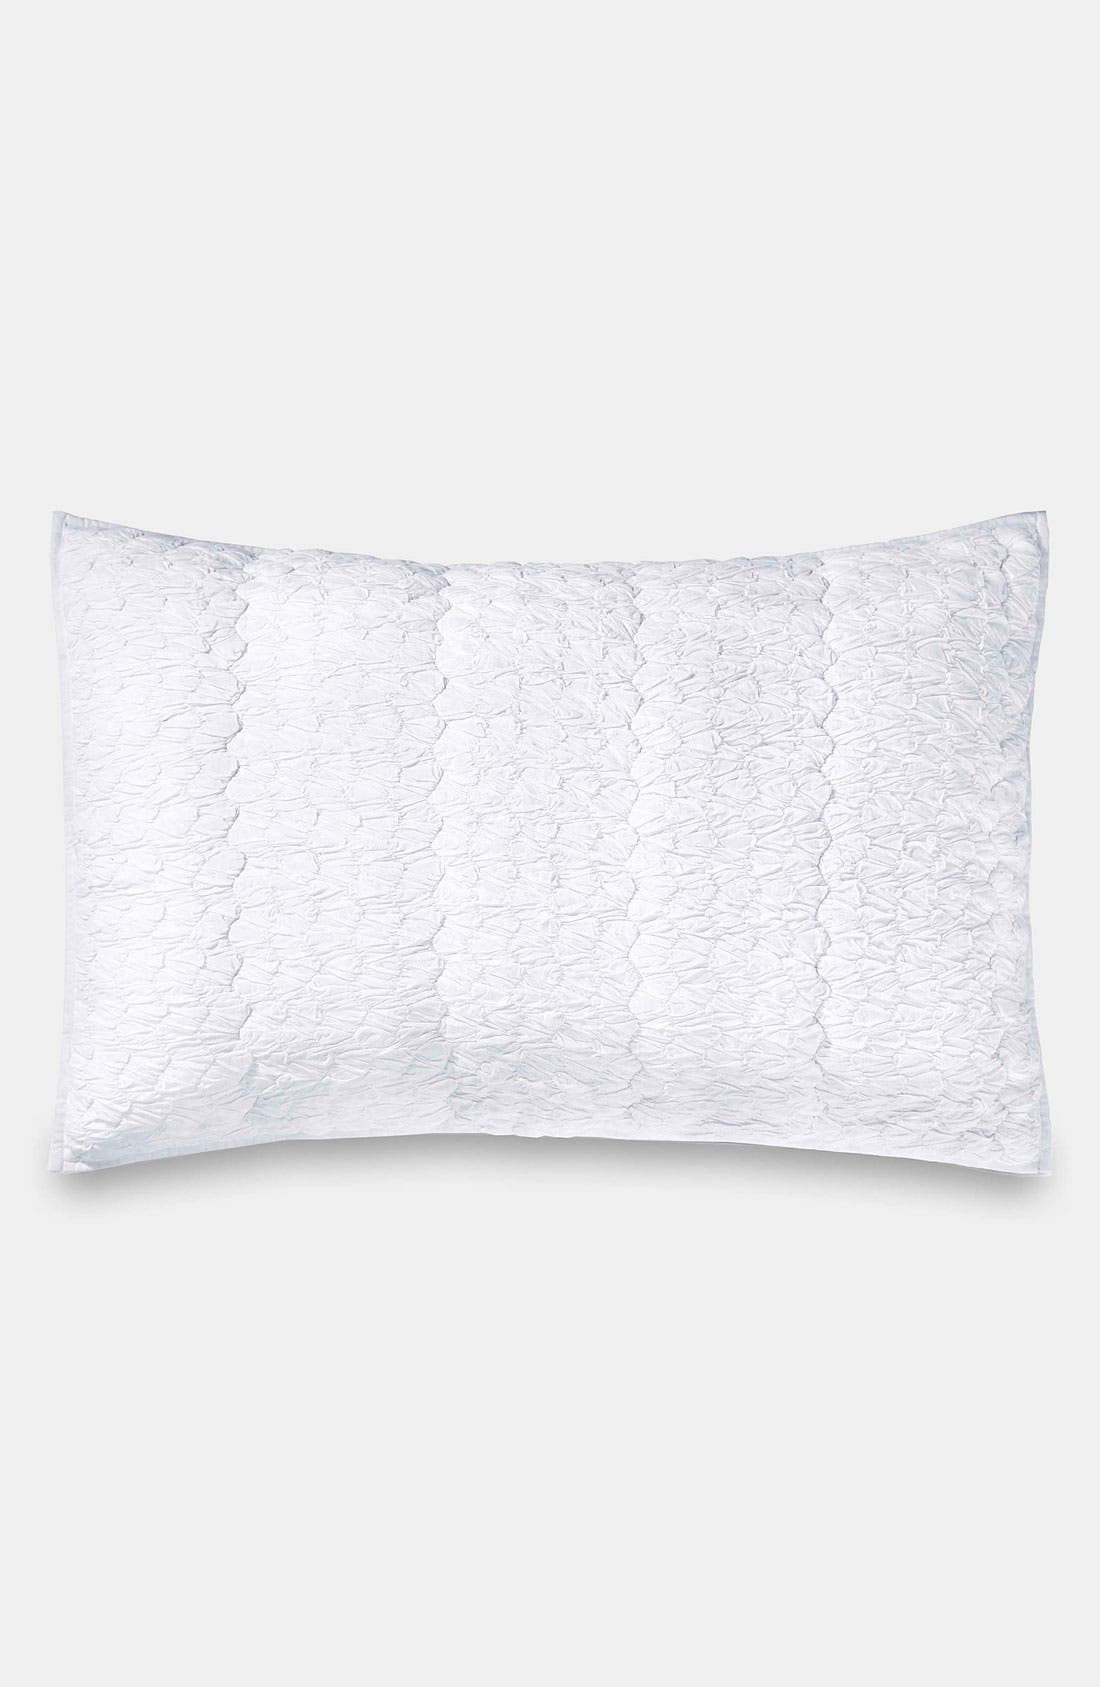 'Pure Enchantment' Pillow Sham,                             Main thumbnail 1, color,                             Milk